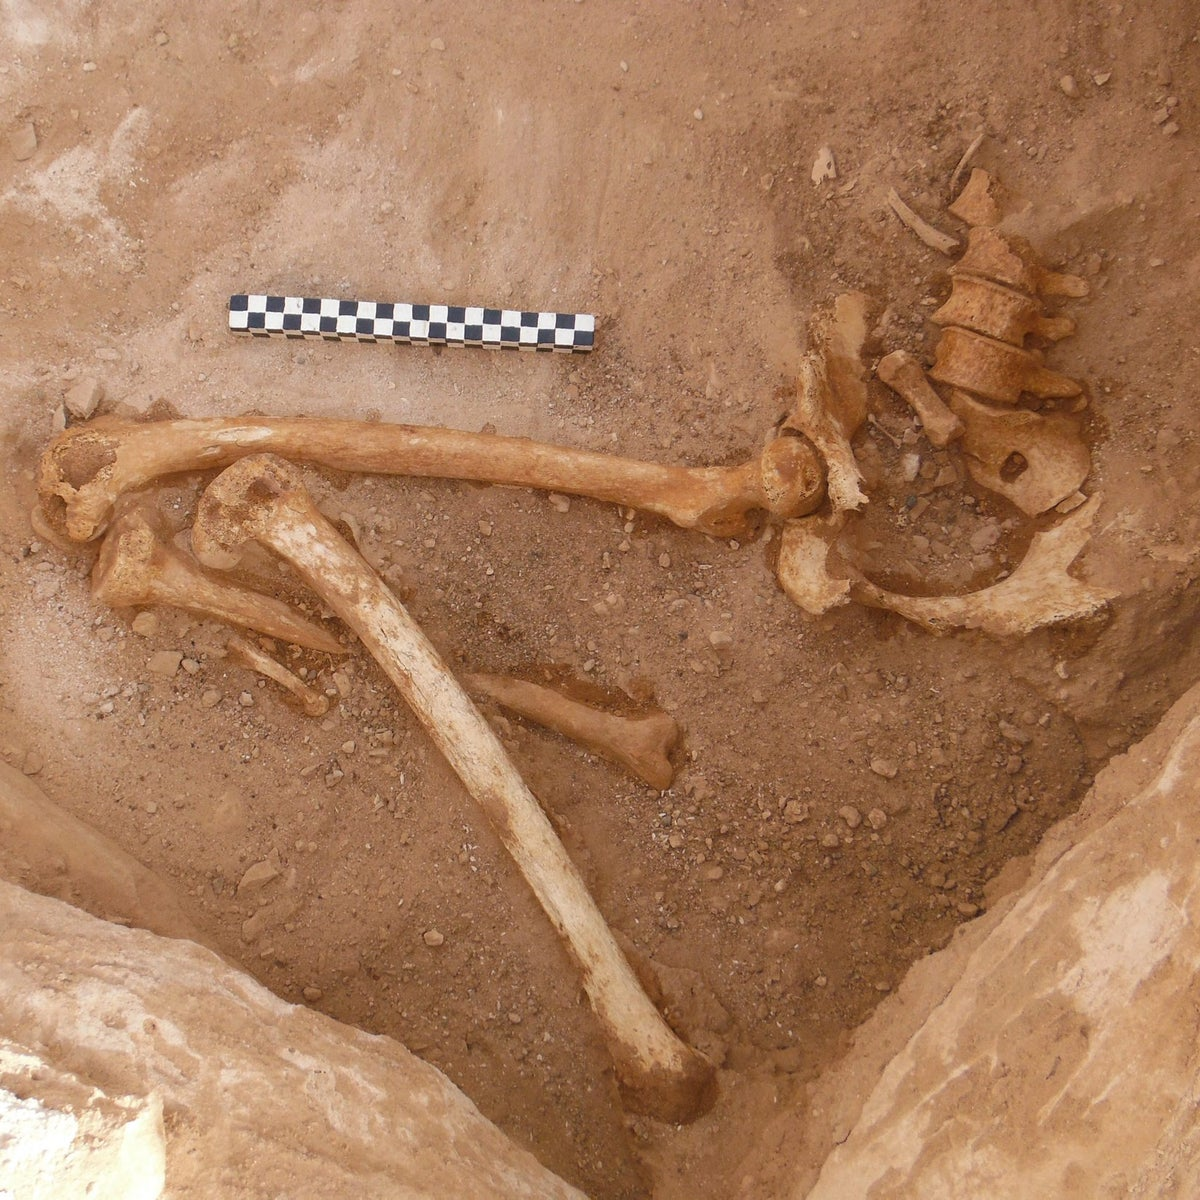 Remains of the lower body of a pregnant woman found in a tomb in the Timna valley. Some of the fetus' bones are visible in the pelvic area.